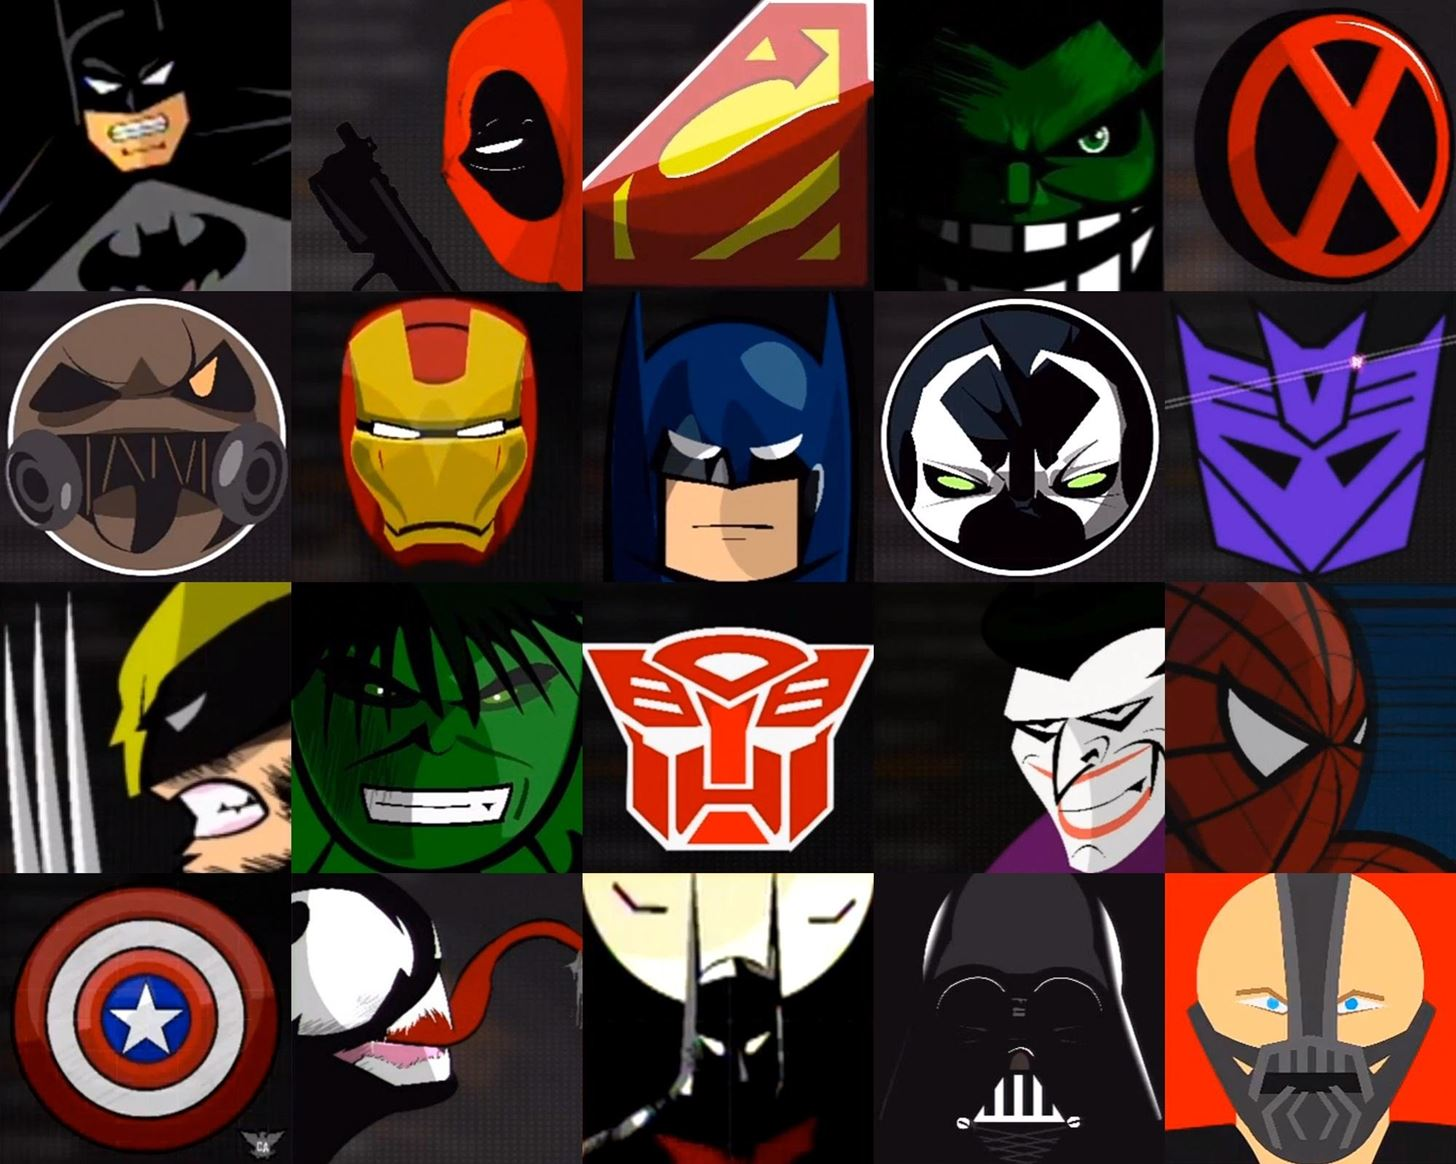 20 Epic Superhero and Villain Emblems for Call of Duty: Black Ops 2 (And How to Make Them)